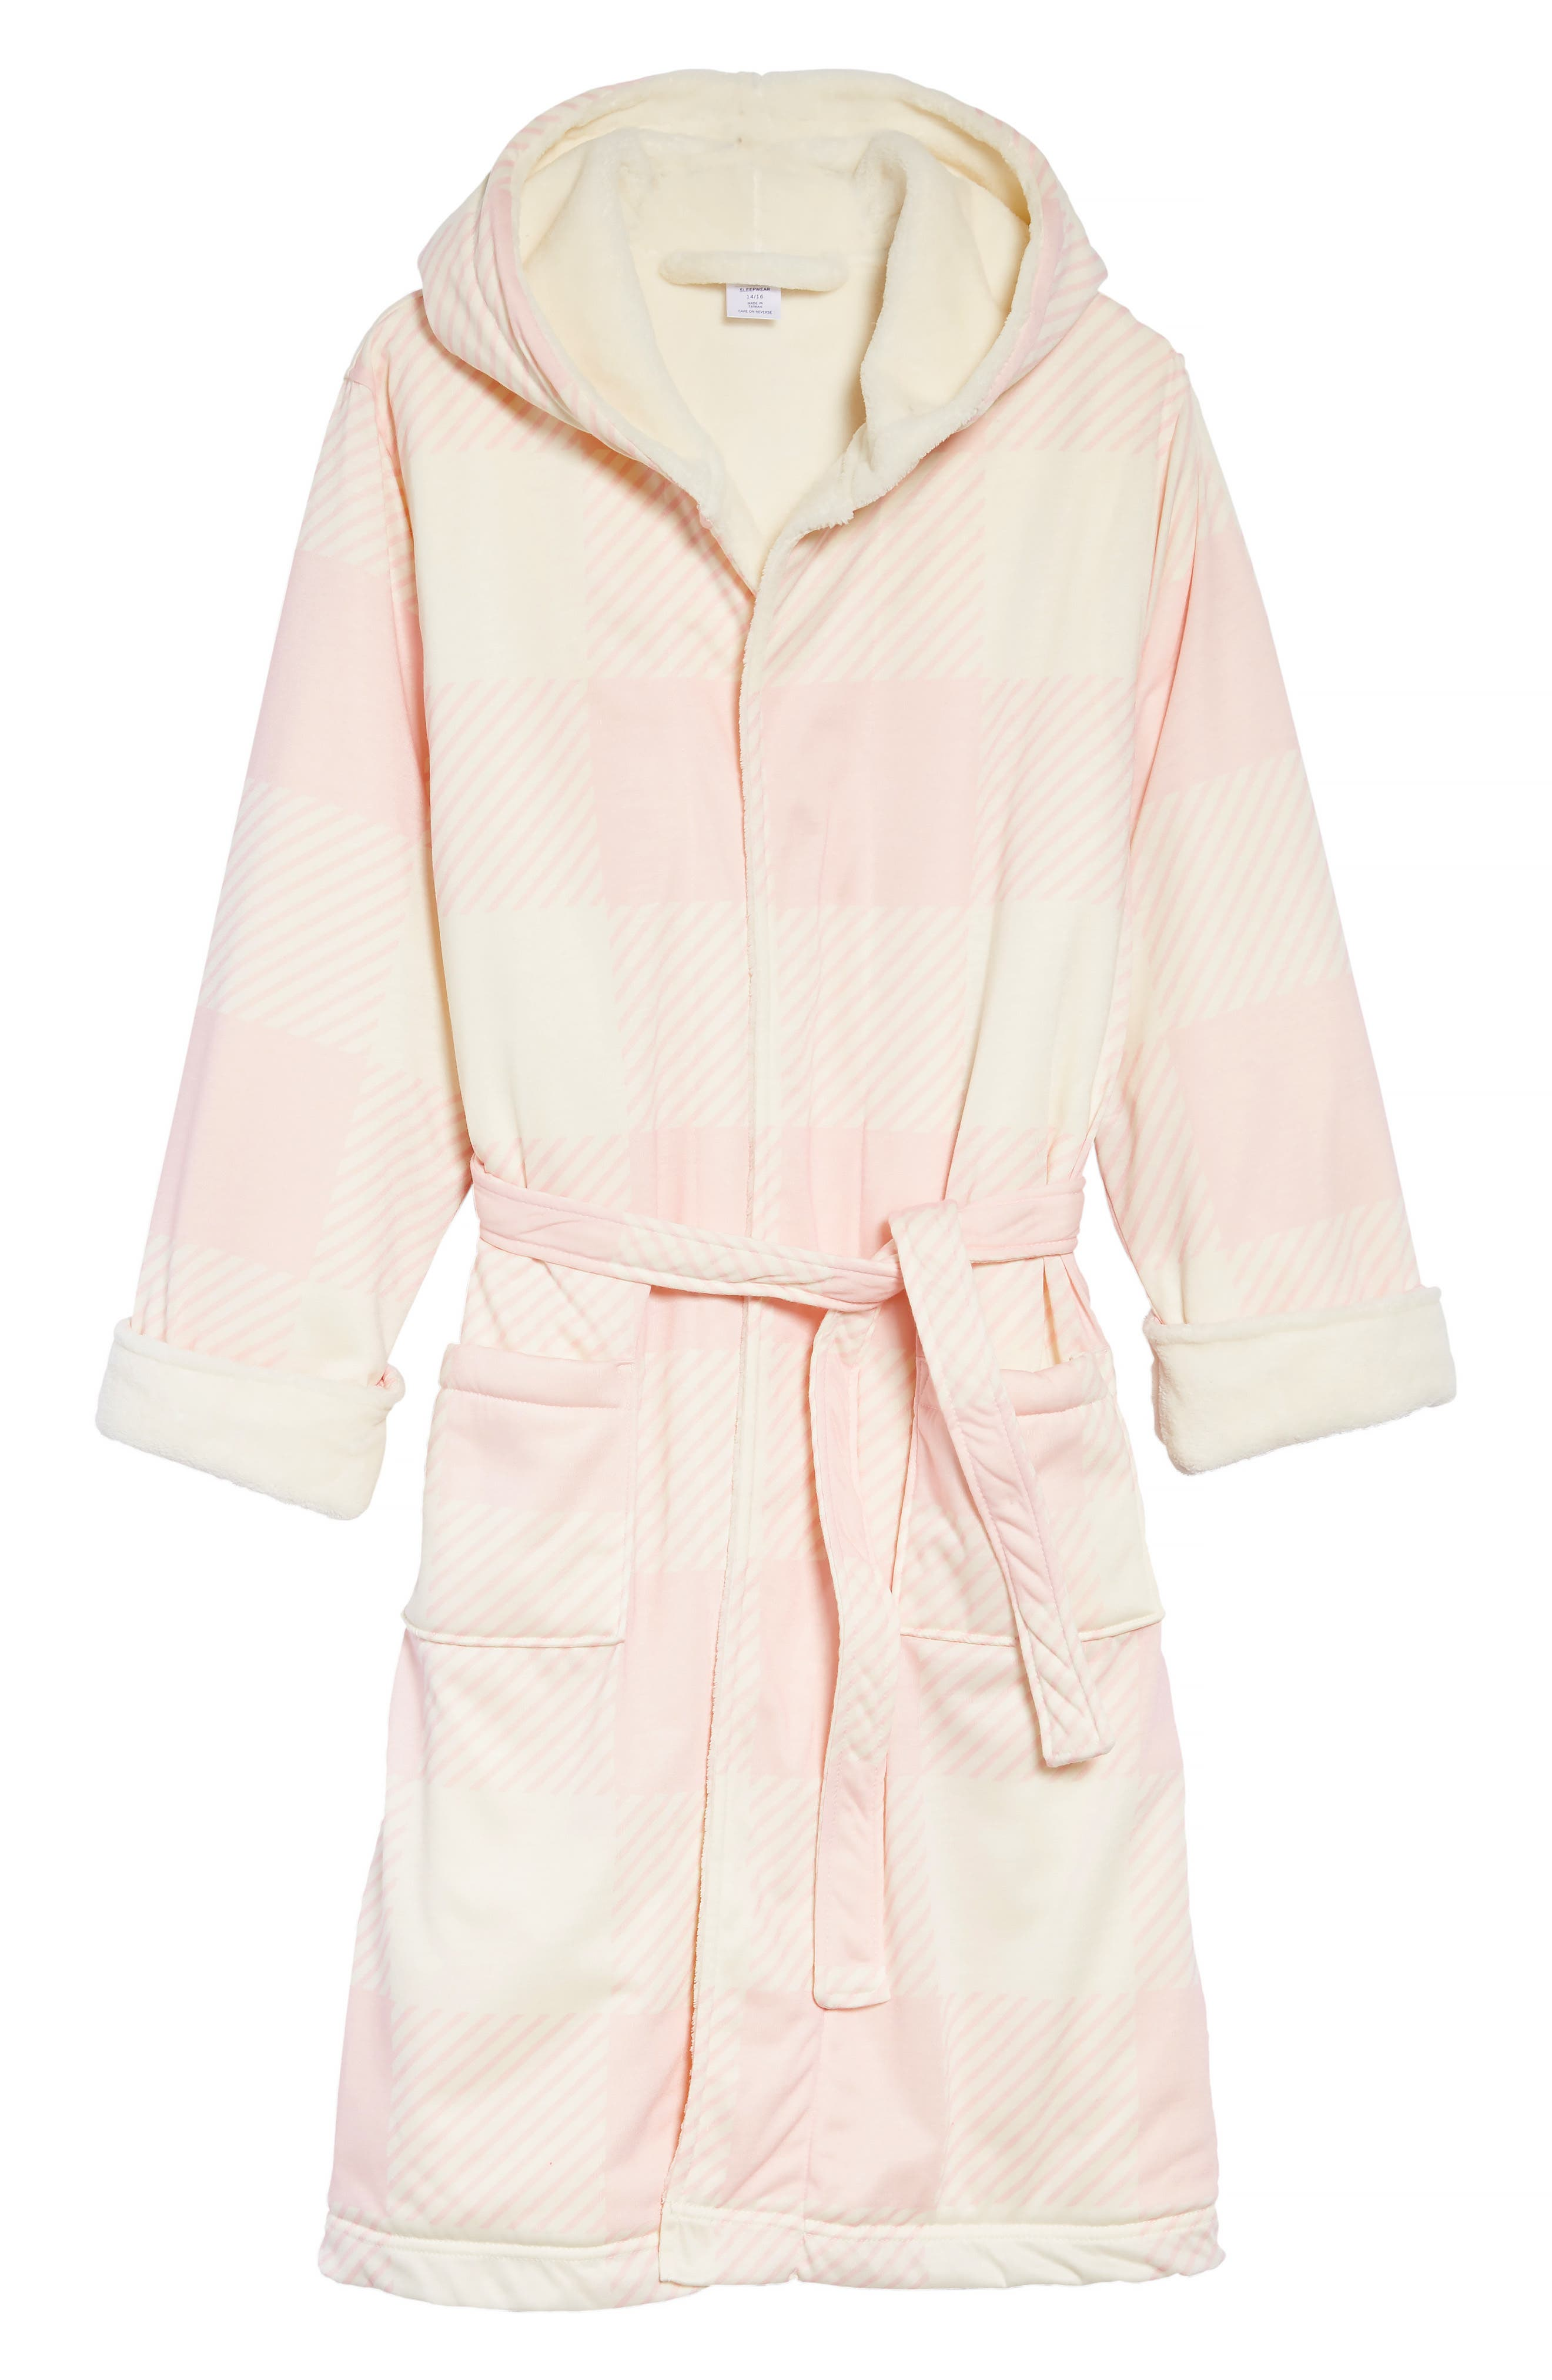 Plush Lined Robe,                         Main,                         color, PINK BABY CHECK